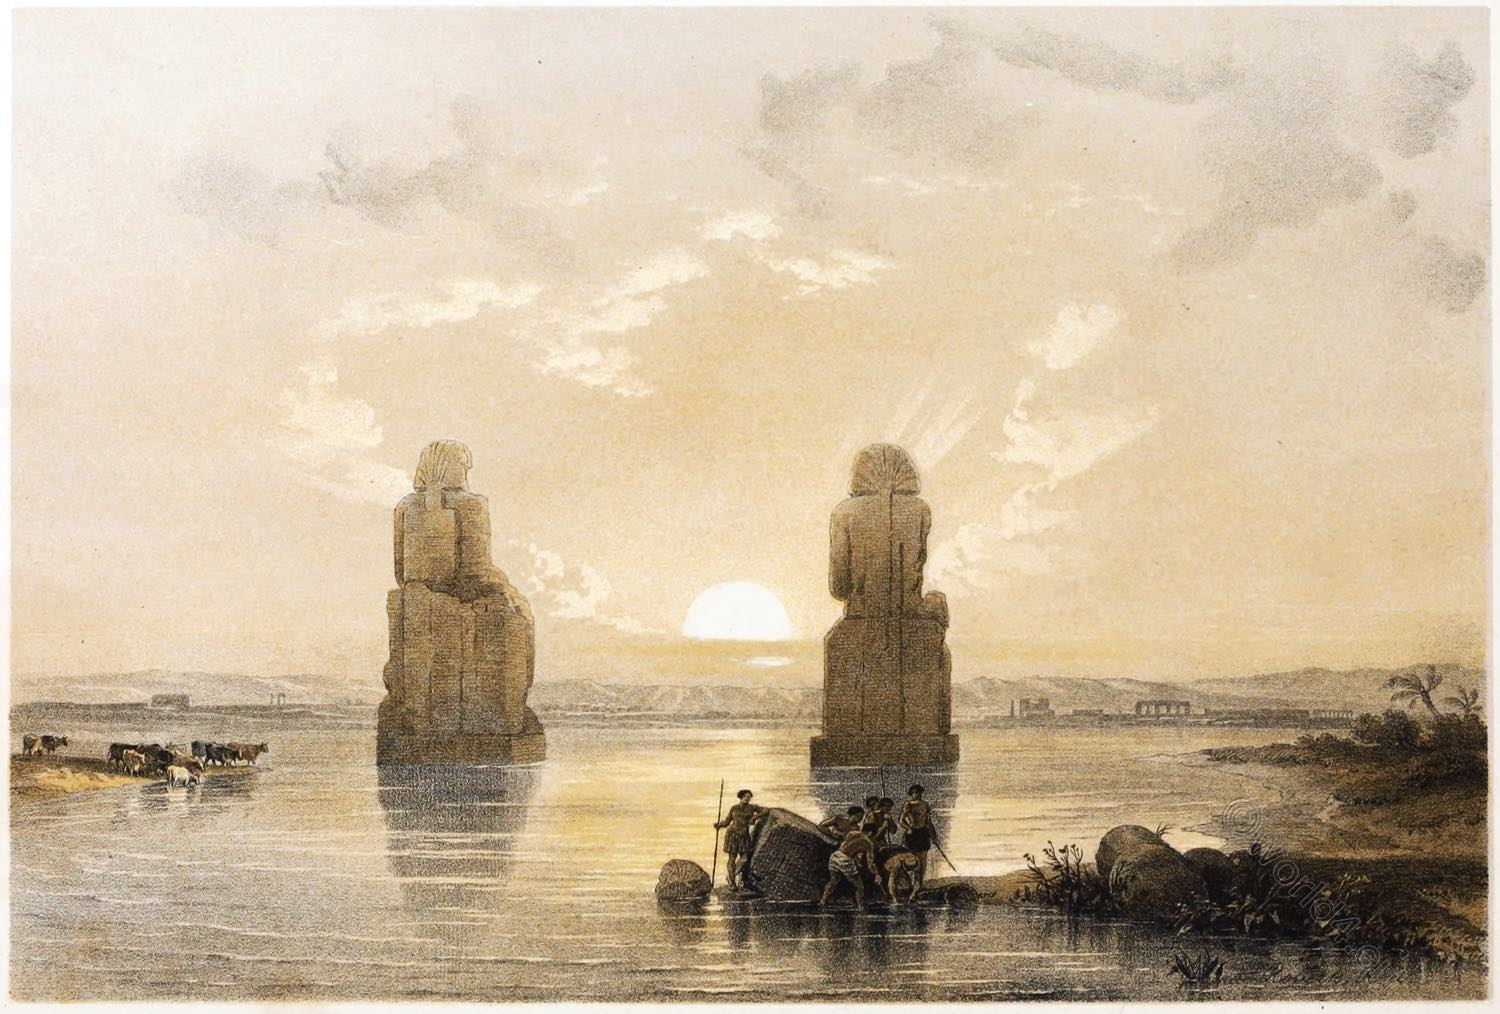 David Roberts, Memnon, Colossi, Egypt, Pharaoh, Travel, Nile, Valley, Thebes-West,